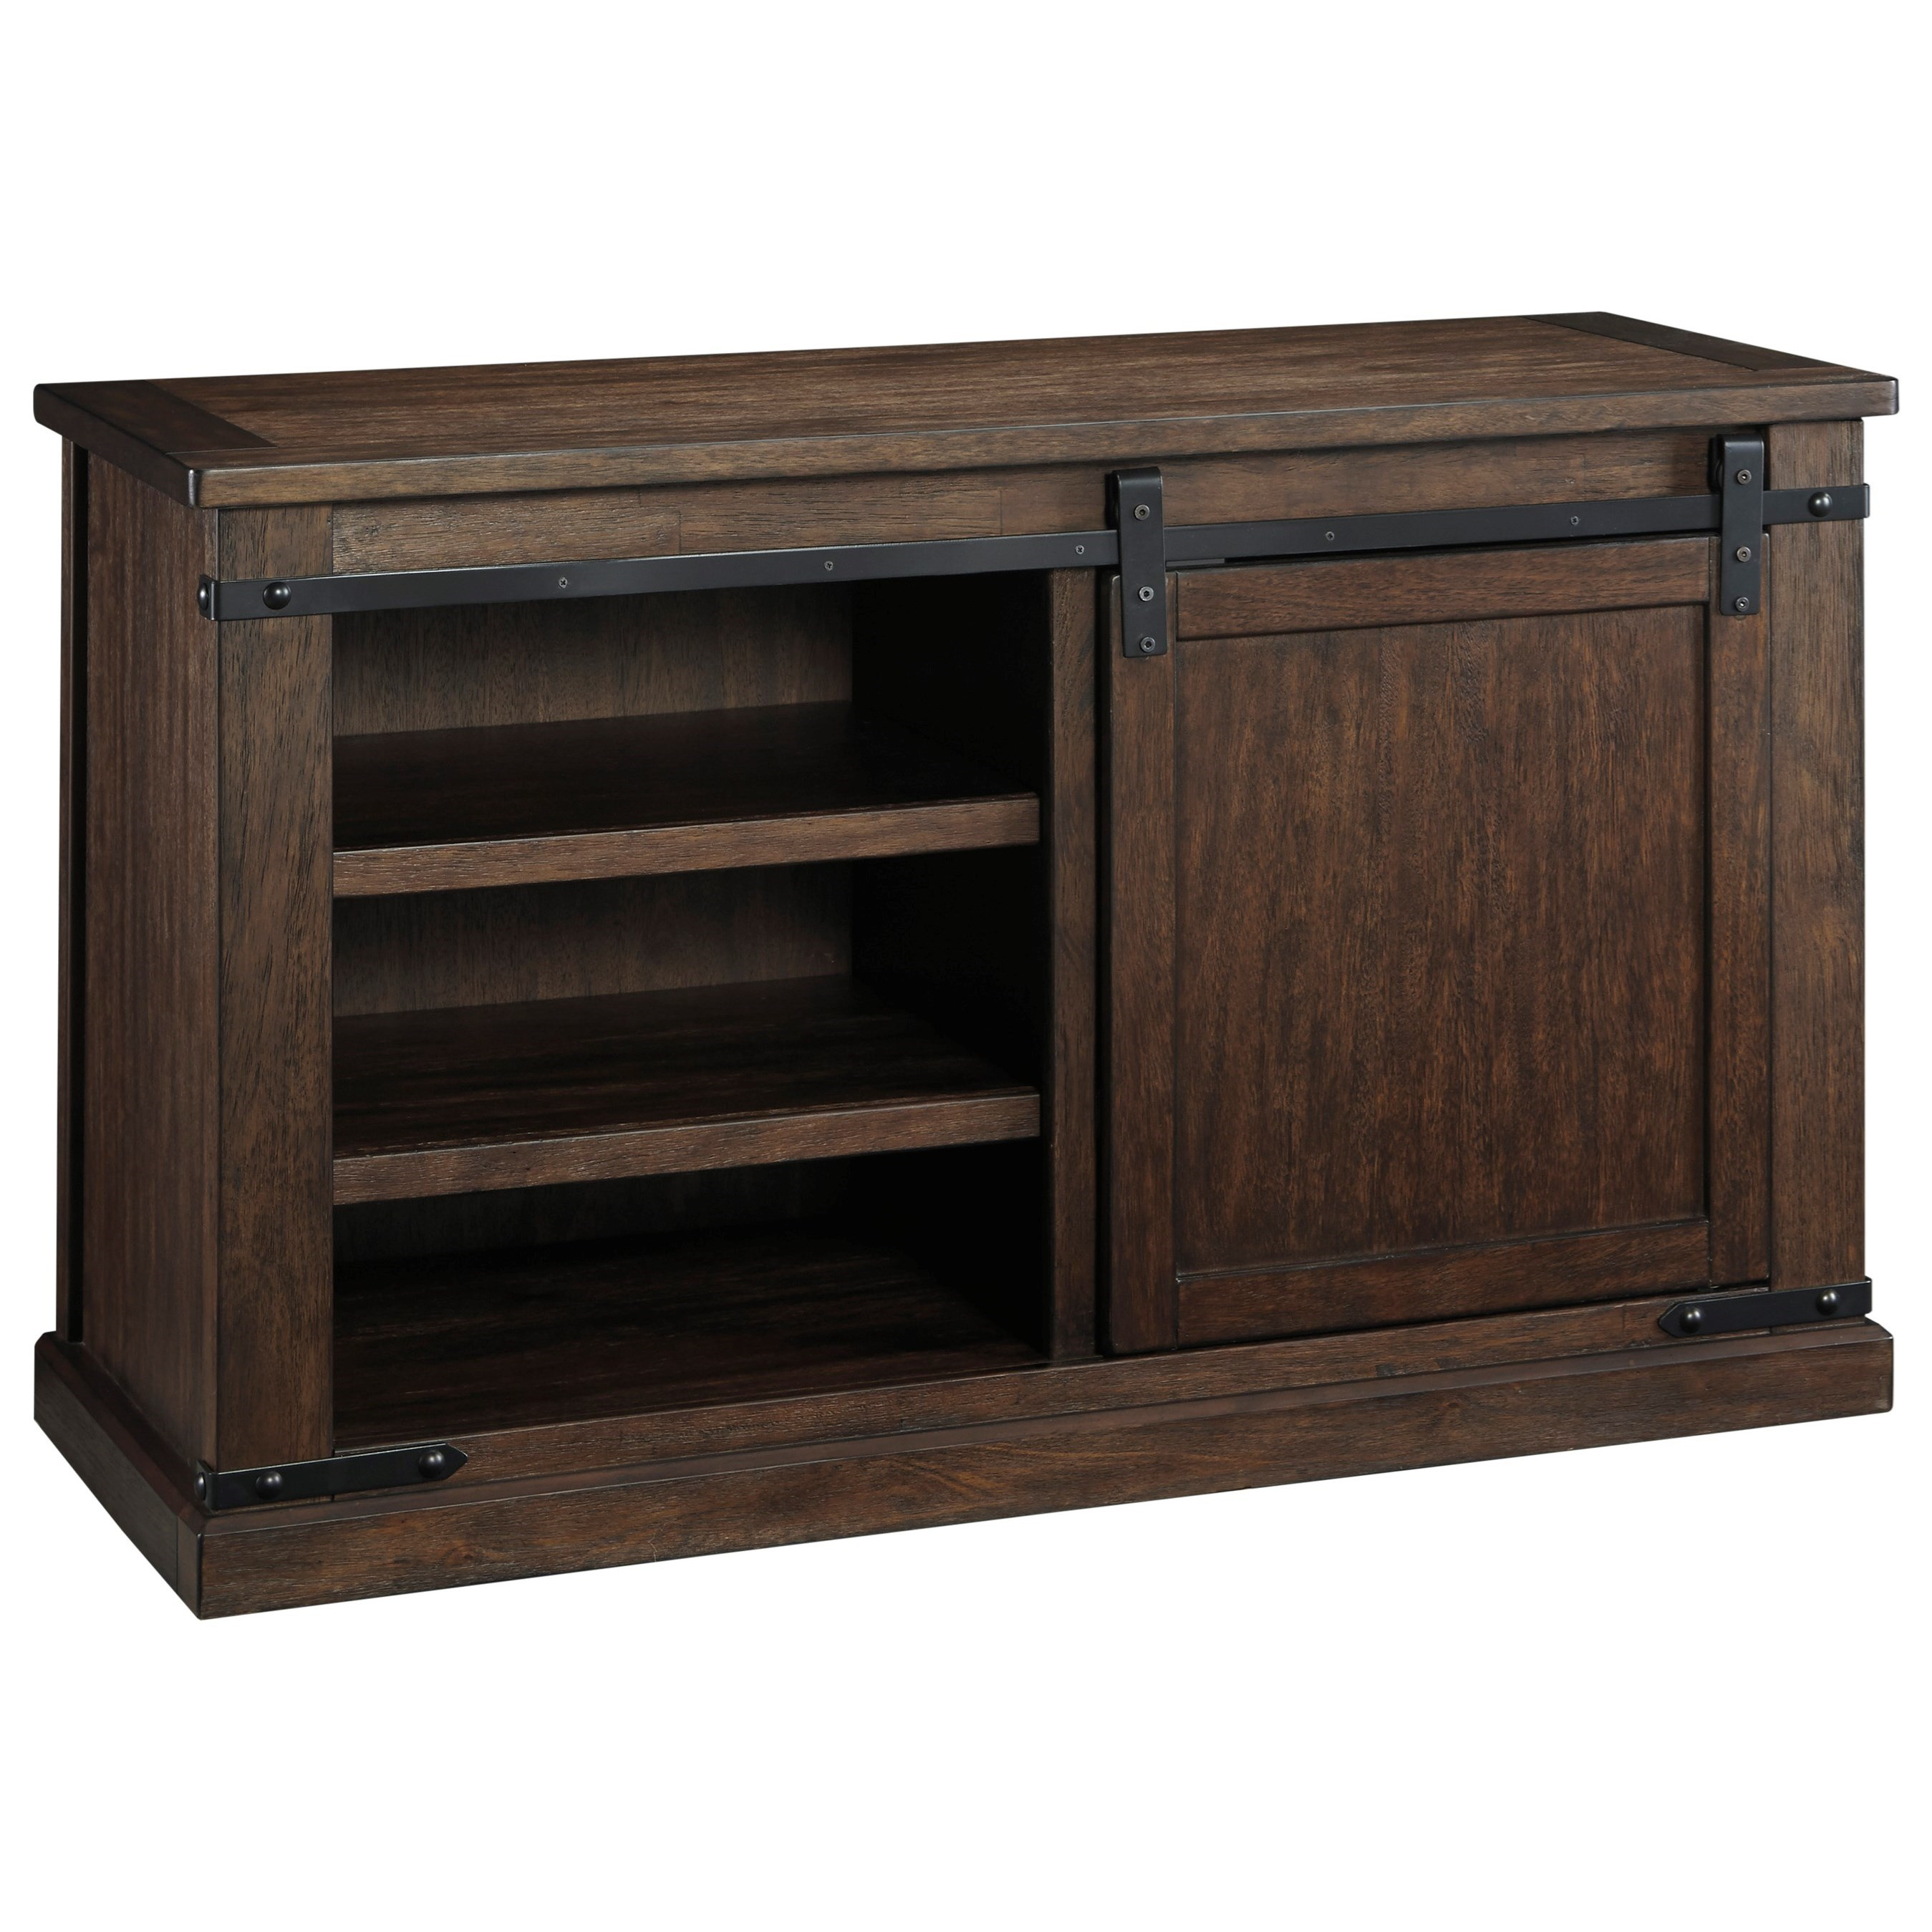 Signature Design by Ashley Budmore Medium TV Stand - Item Number: W562-28